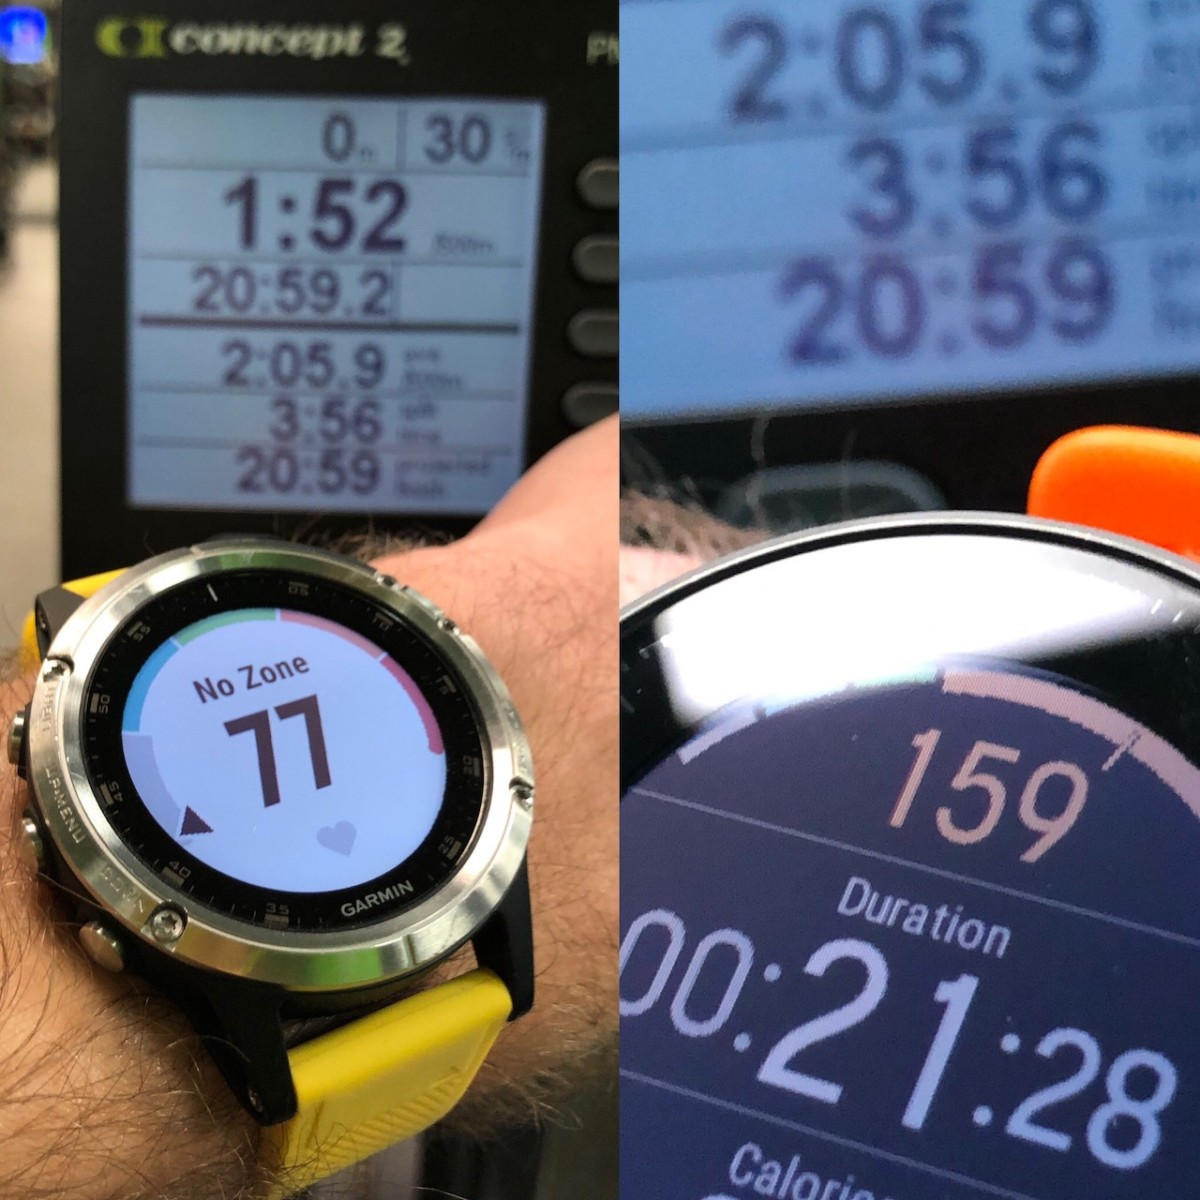 TitaniumGeek 82D5448F 4C2A 46CE 8EB1 B6B700CC4A90 Polar Vantage V Review   A Garmin Killer? Cycling Gear Reviews Heart Rate Monitors Running  running Polar HRM garmin cycling apple watch   Image of 82D5448F 4C2A 46CE 8EB1 B6B700CC4A90